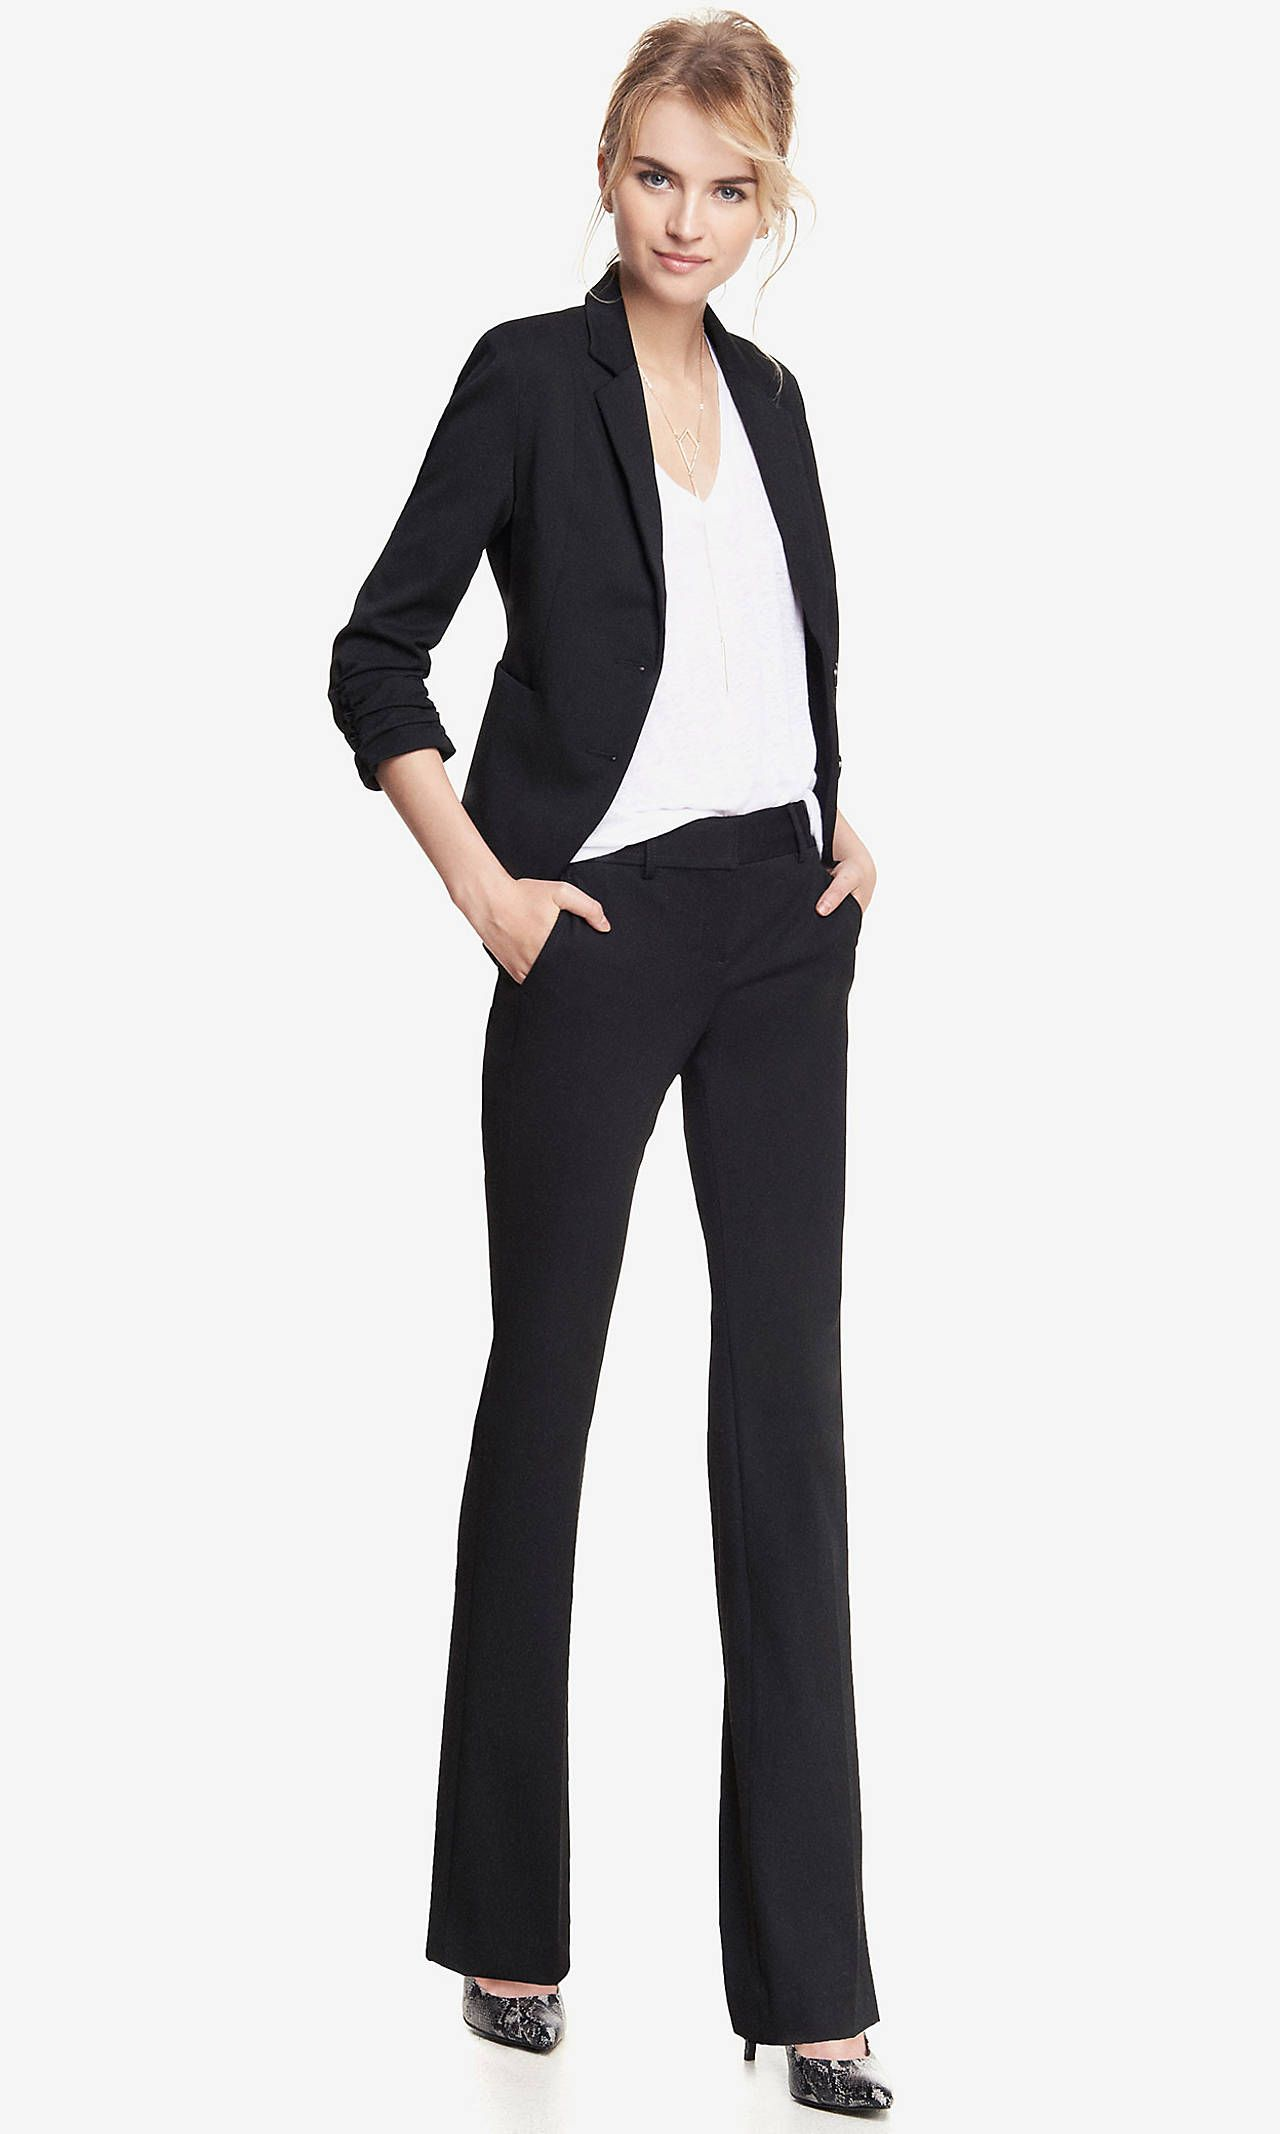 tall women dress pants | women pants | Pinterest | Women's dress ...